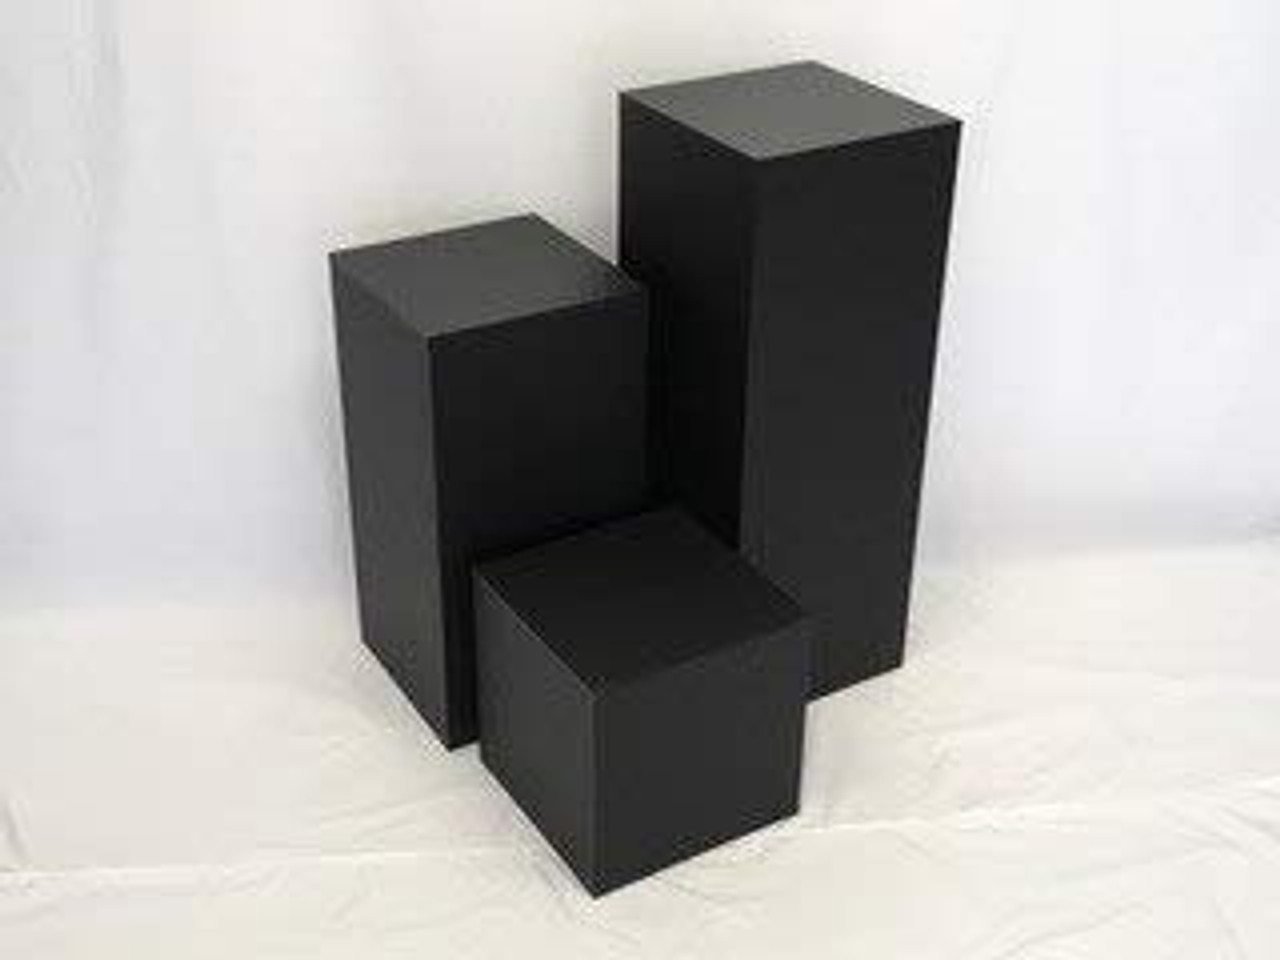 Matte Finish Black Square Cube, 24 Inch